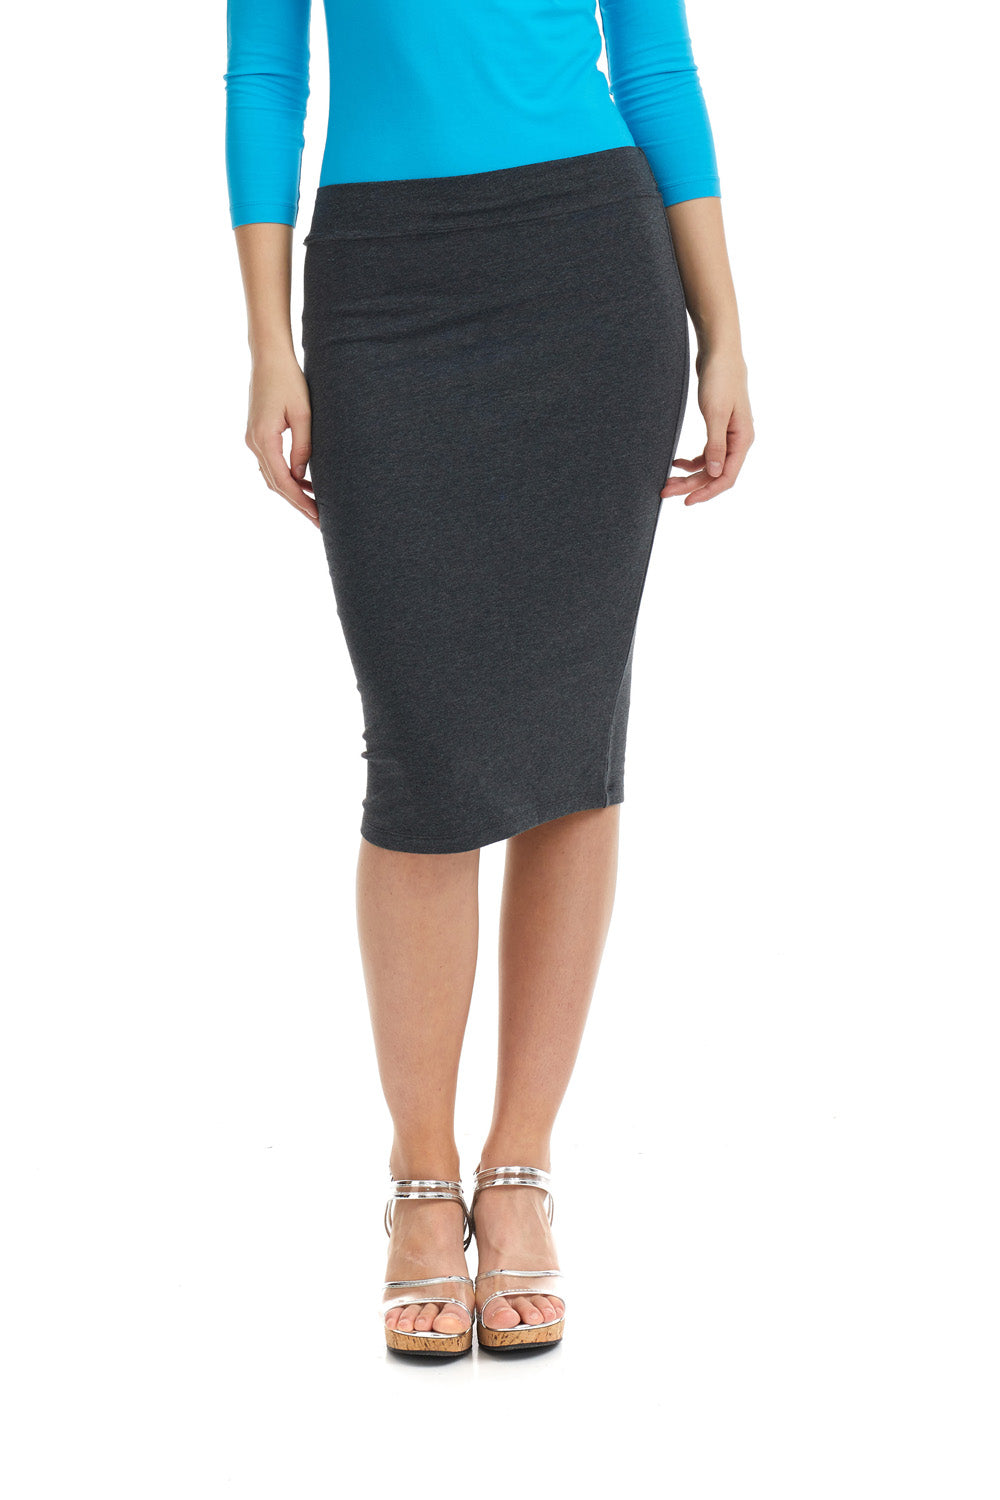 Stretchy Opaque Lightweight Slim Fit Bandage Style ESTEEZ Women/'s Pencil Skirt